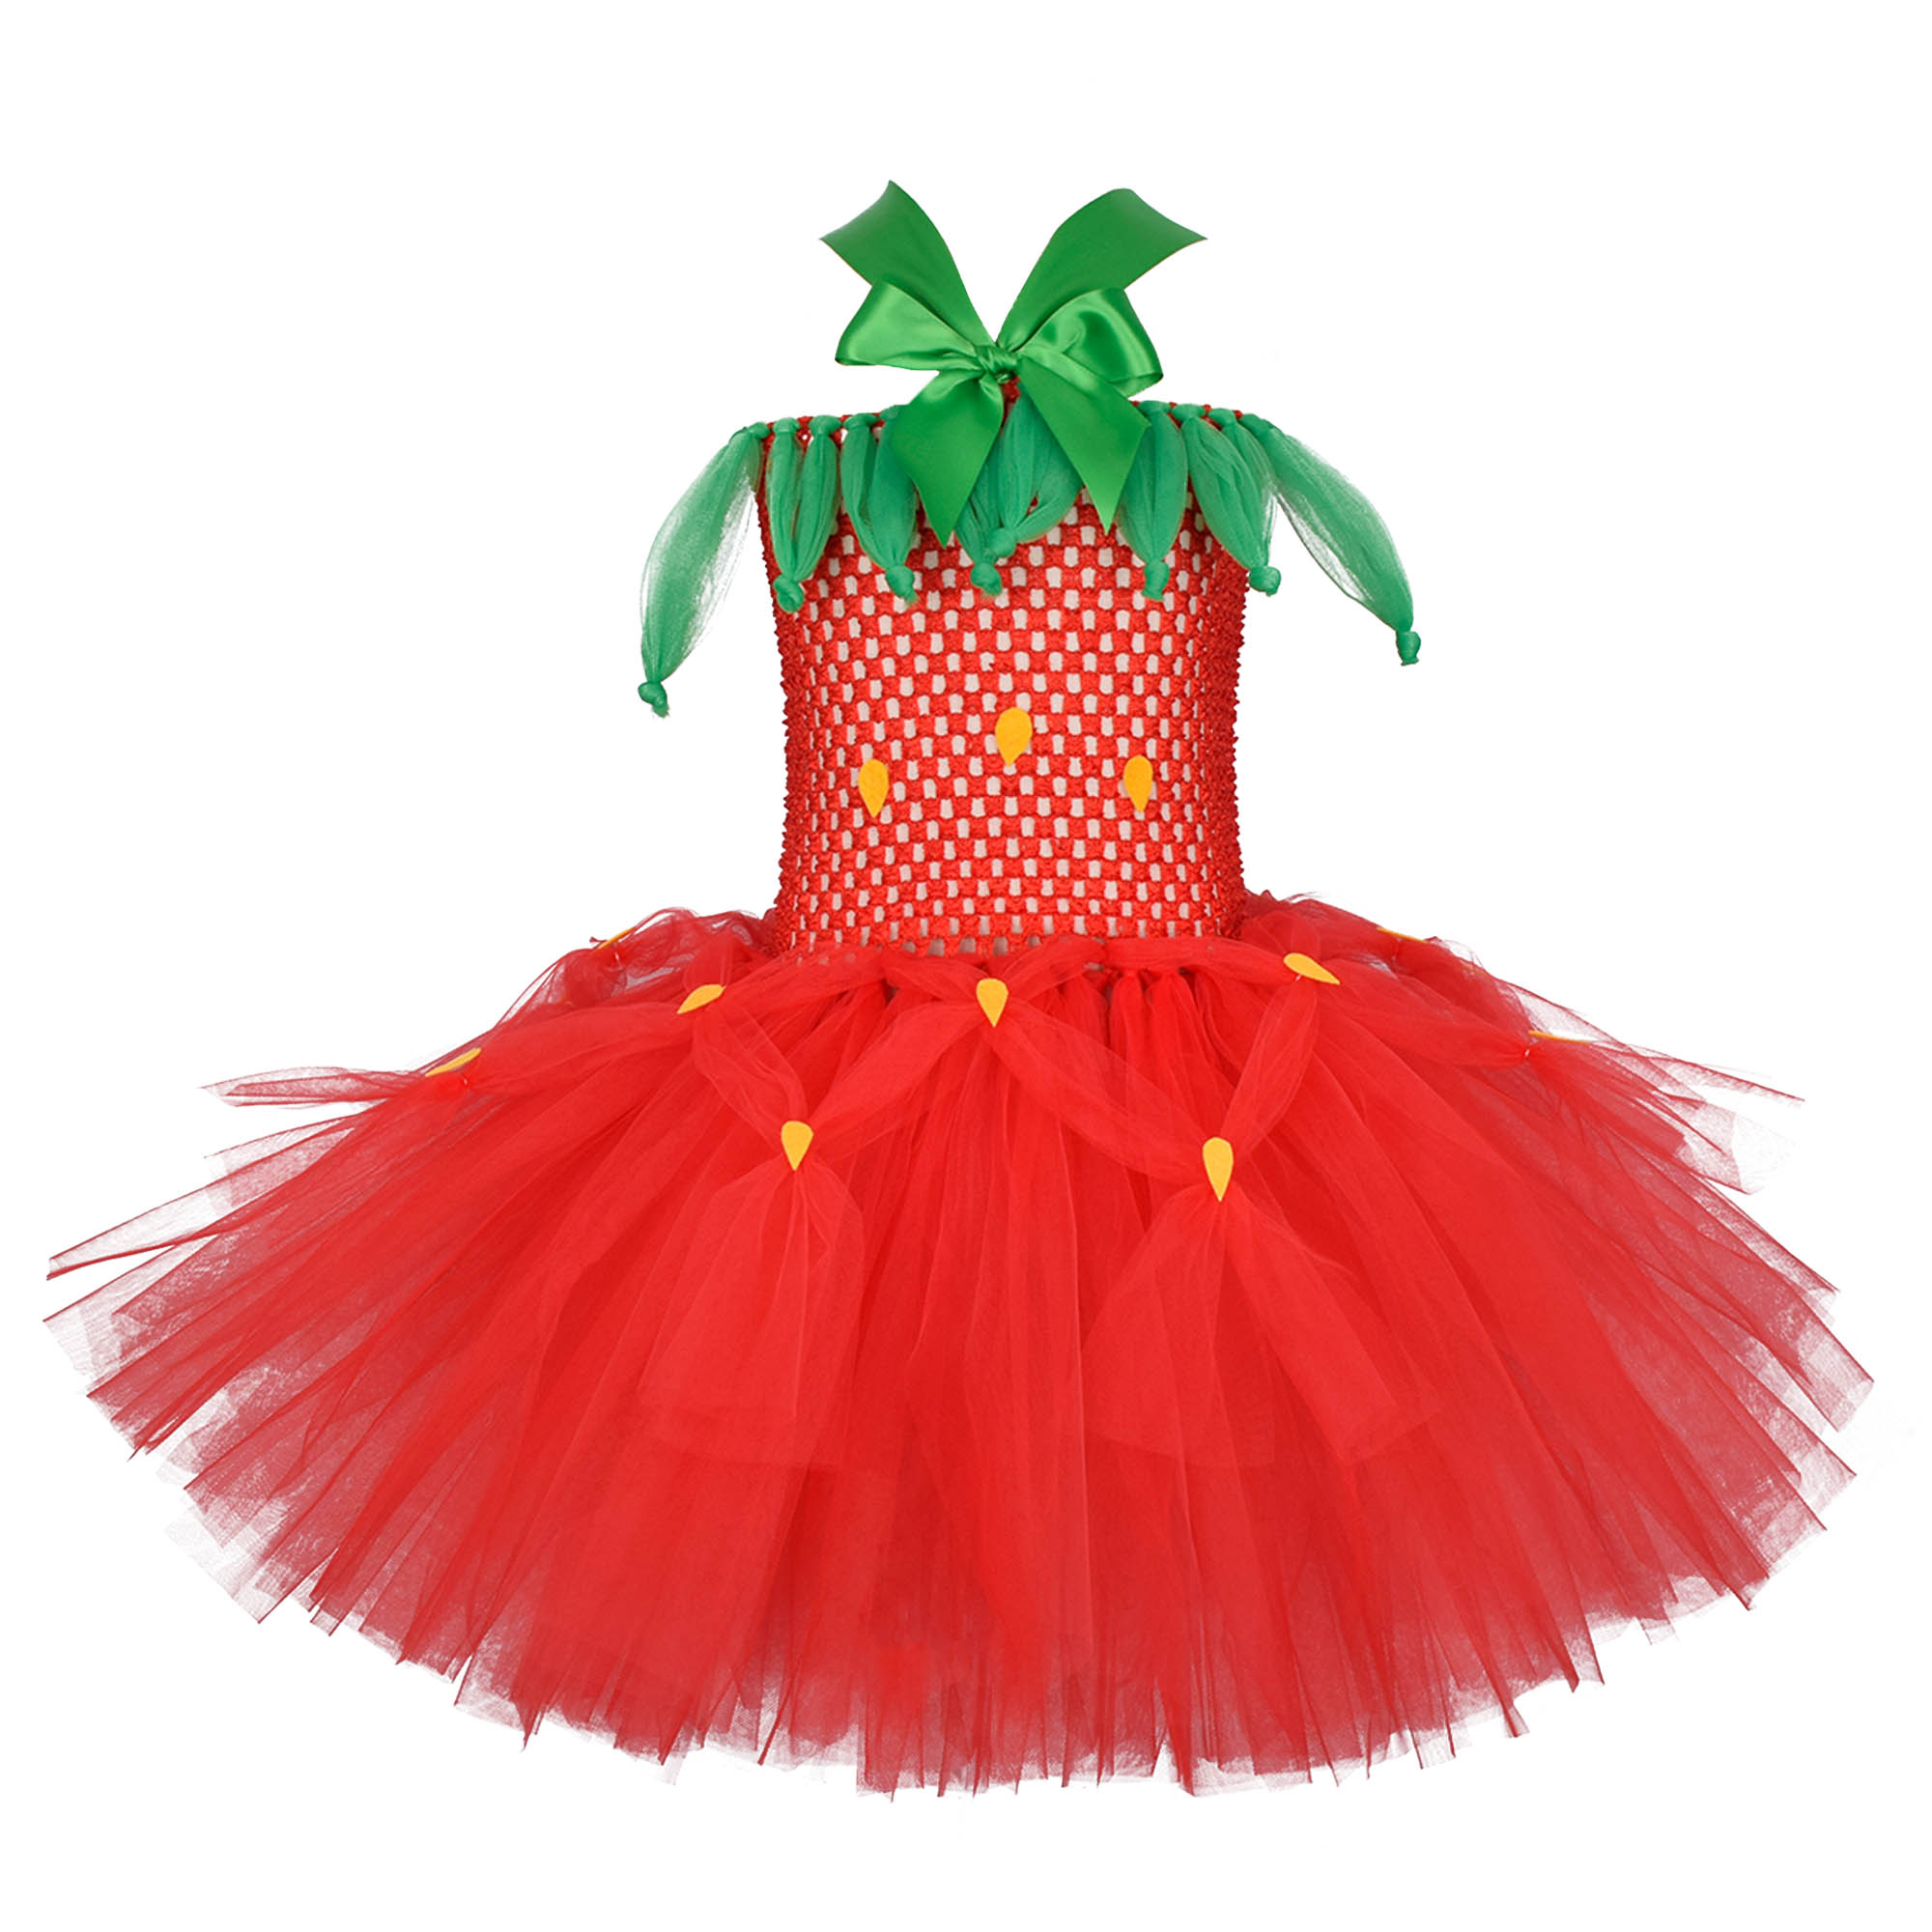 Red Strawberry Tutu Dress Baby Girls First Birthday Party Dresses Strawberry Theme Birthday Tutu Costume Kids Photography 0-12Y 1